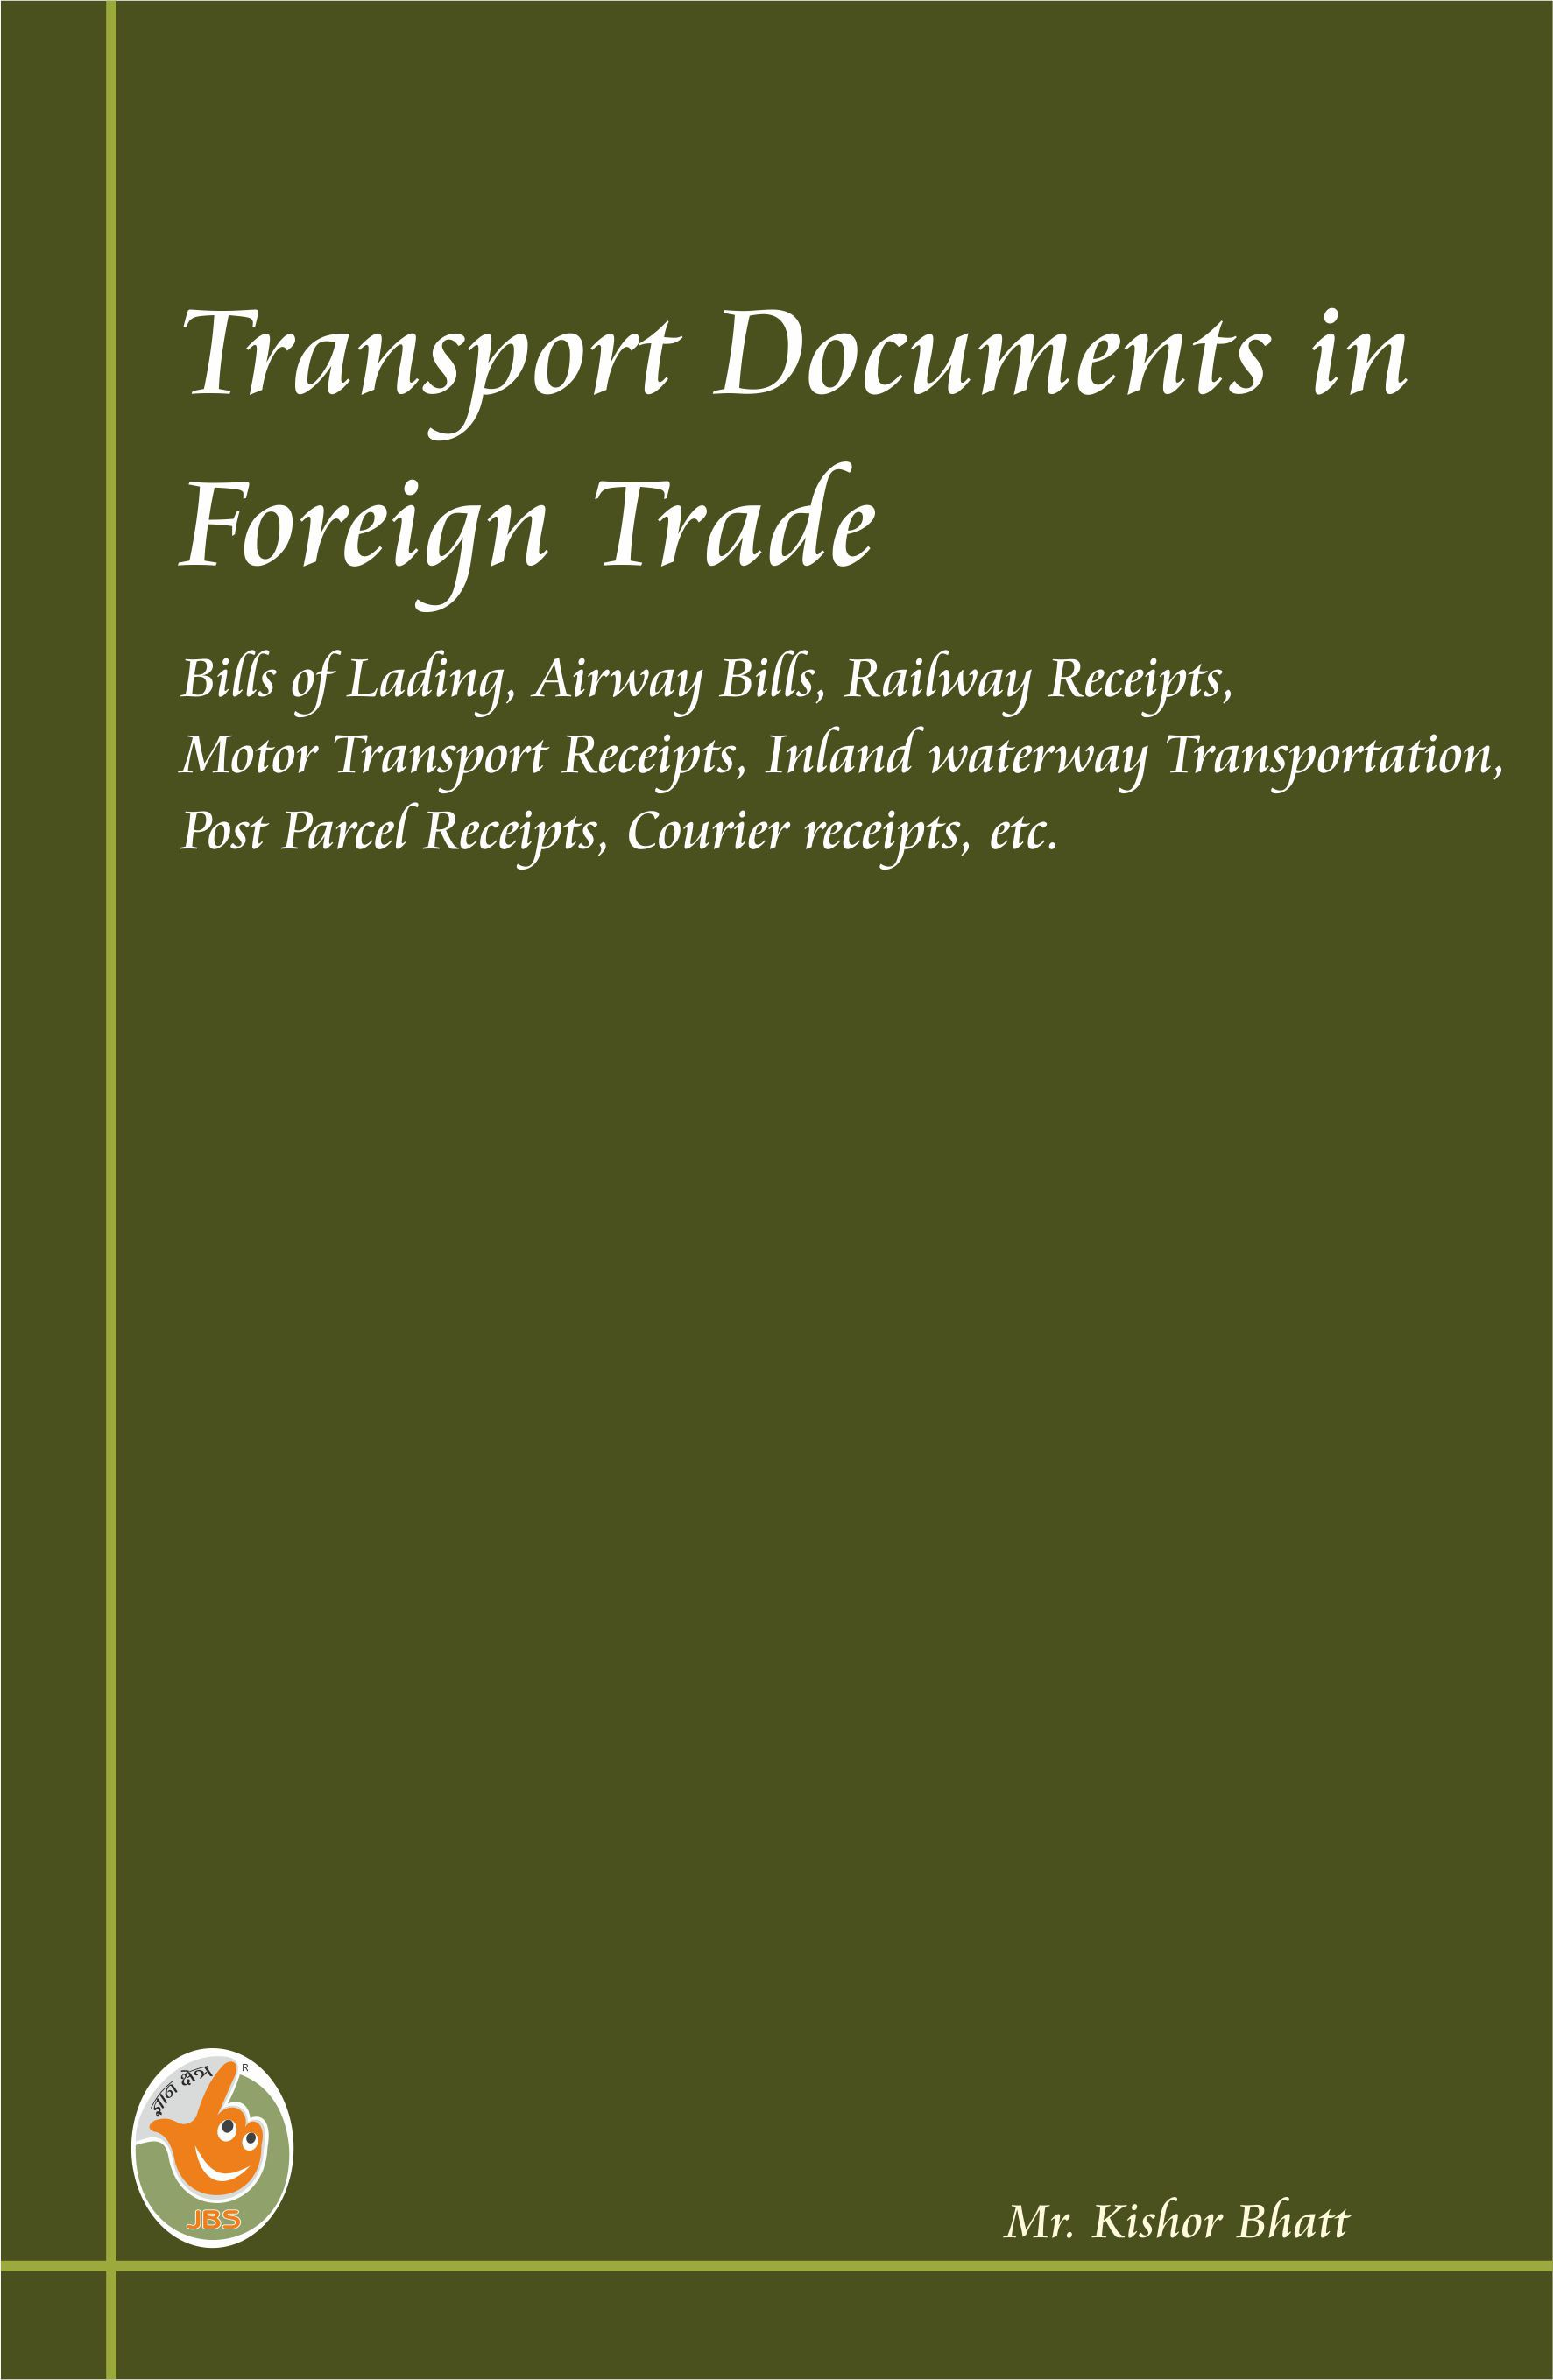 Transport Documents in Foreign Trade